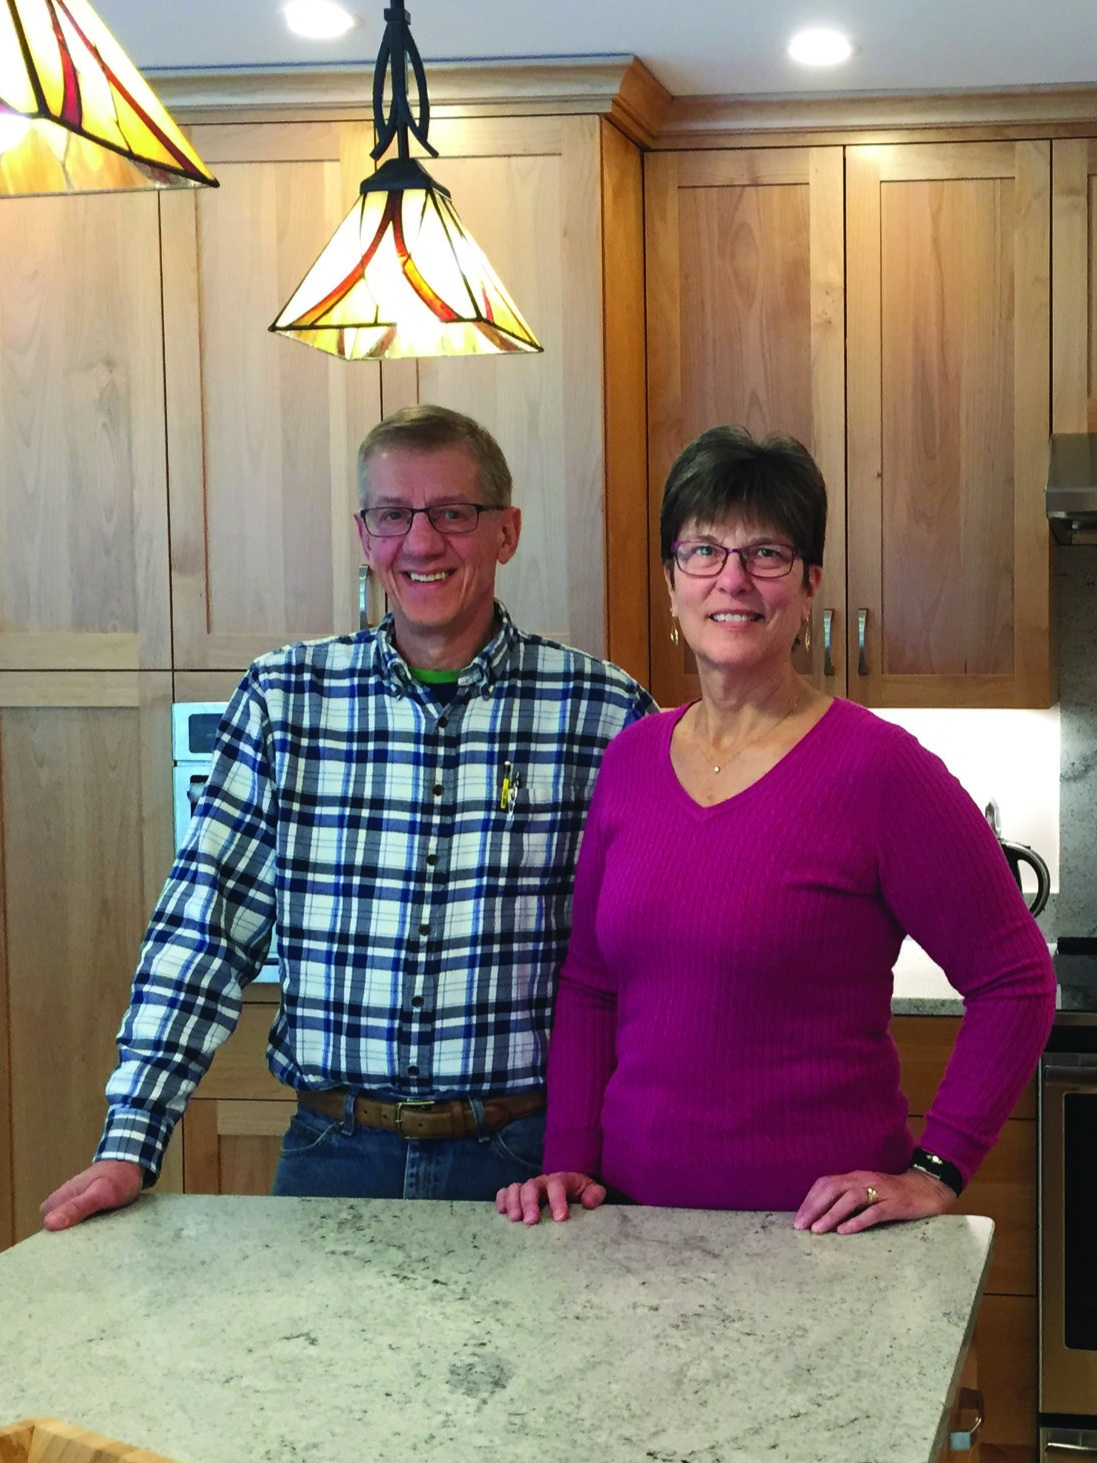 Homeowners, Steve and Cheryl Martin.